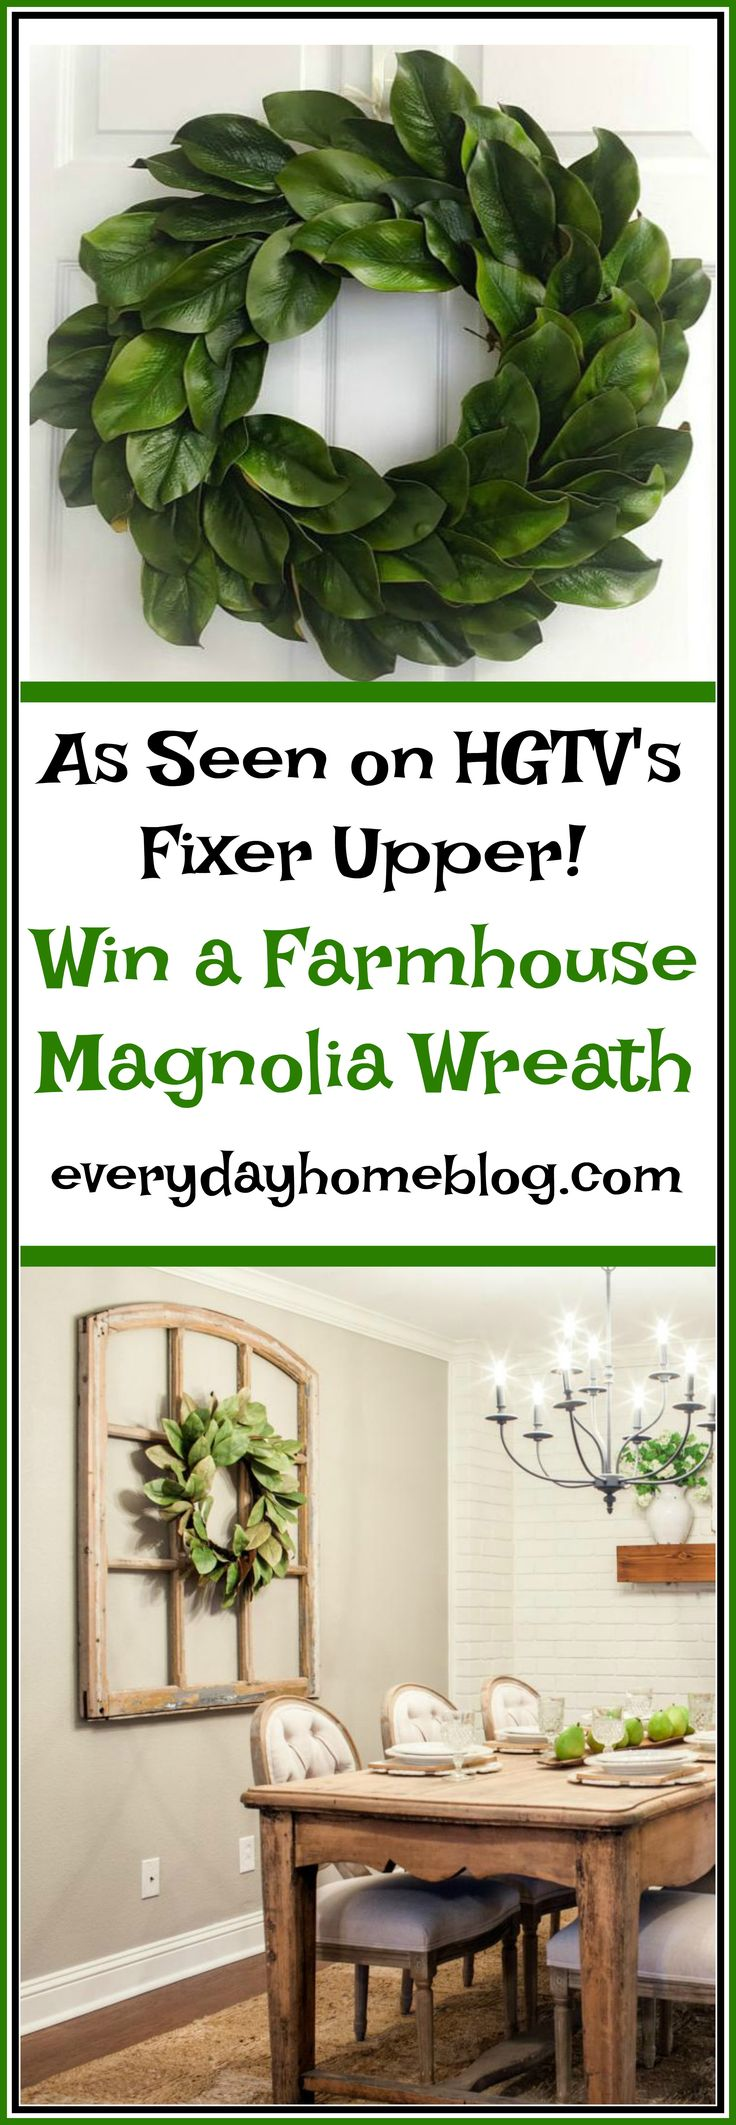 Win a Farmhouse Magnolia Wreath | The Everyday Home